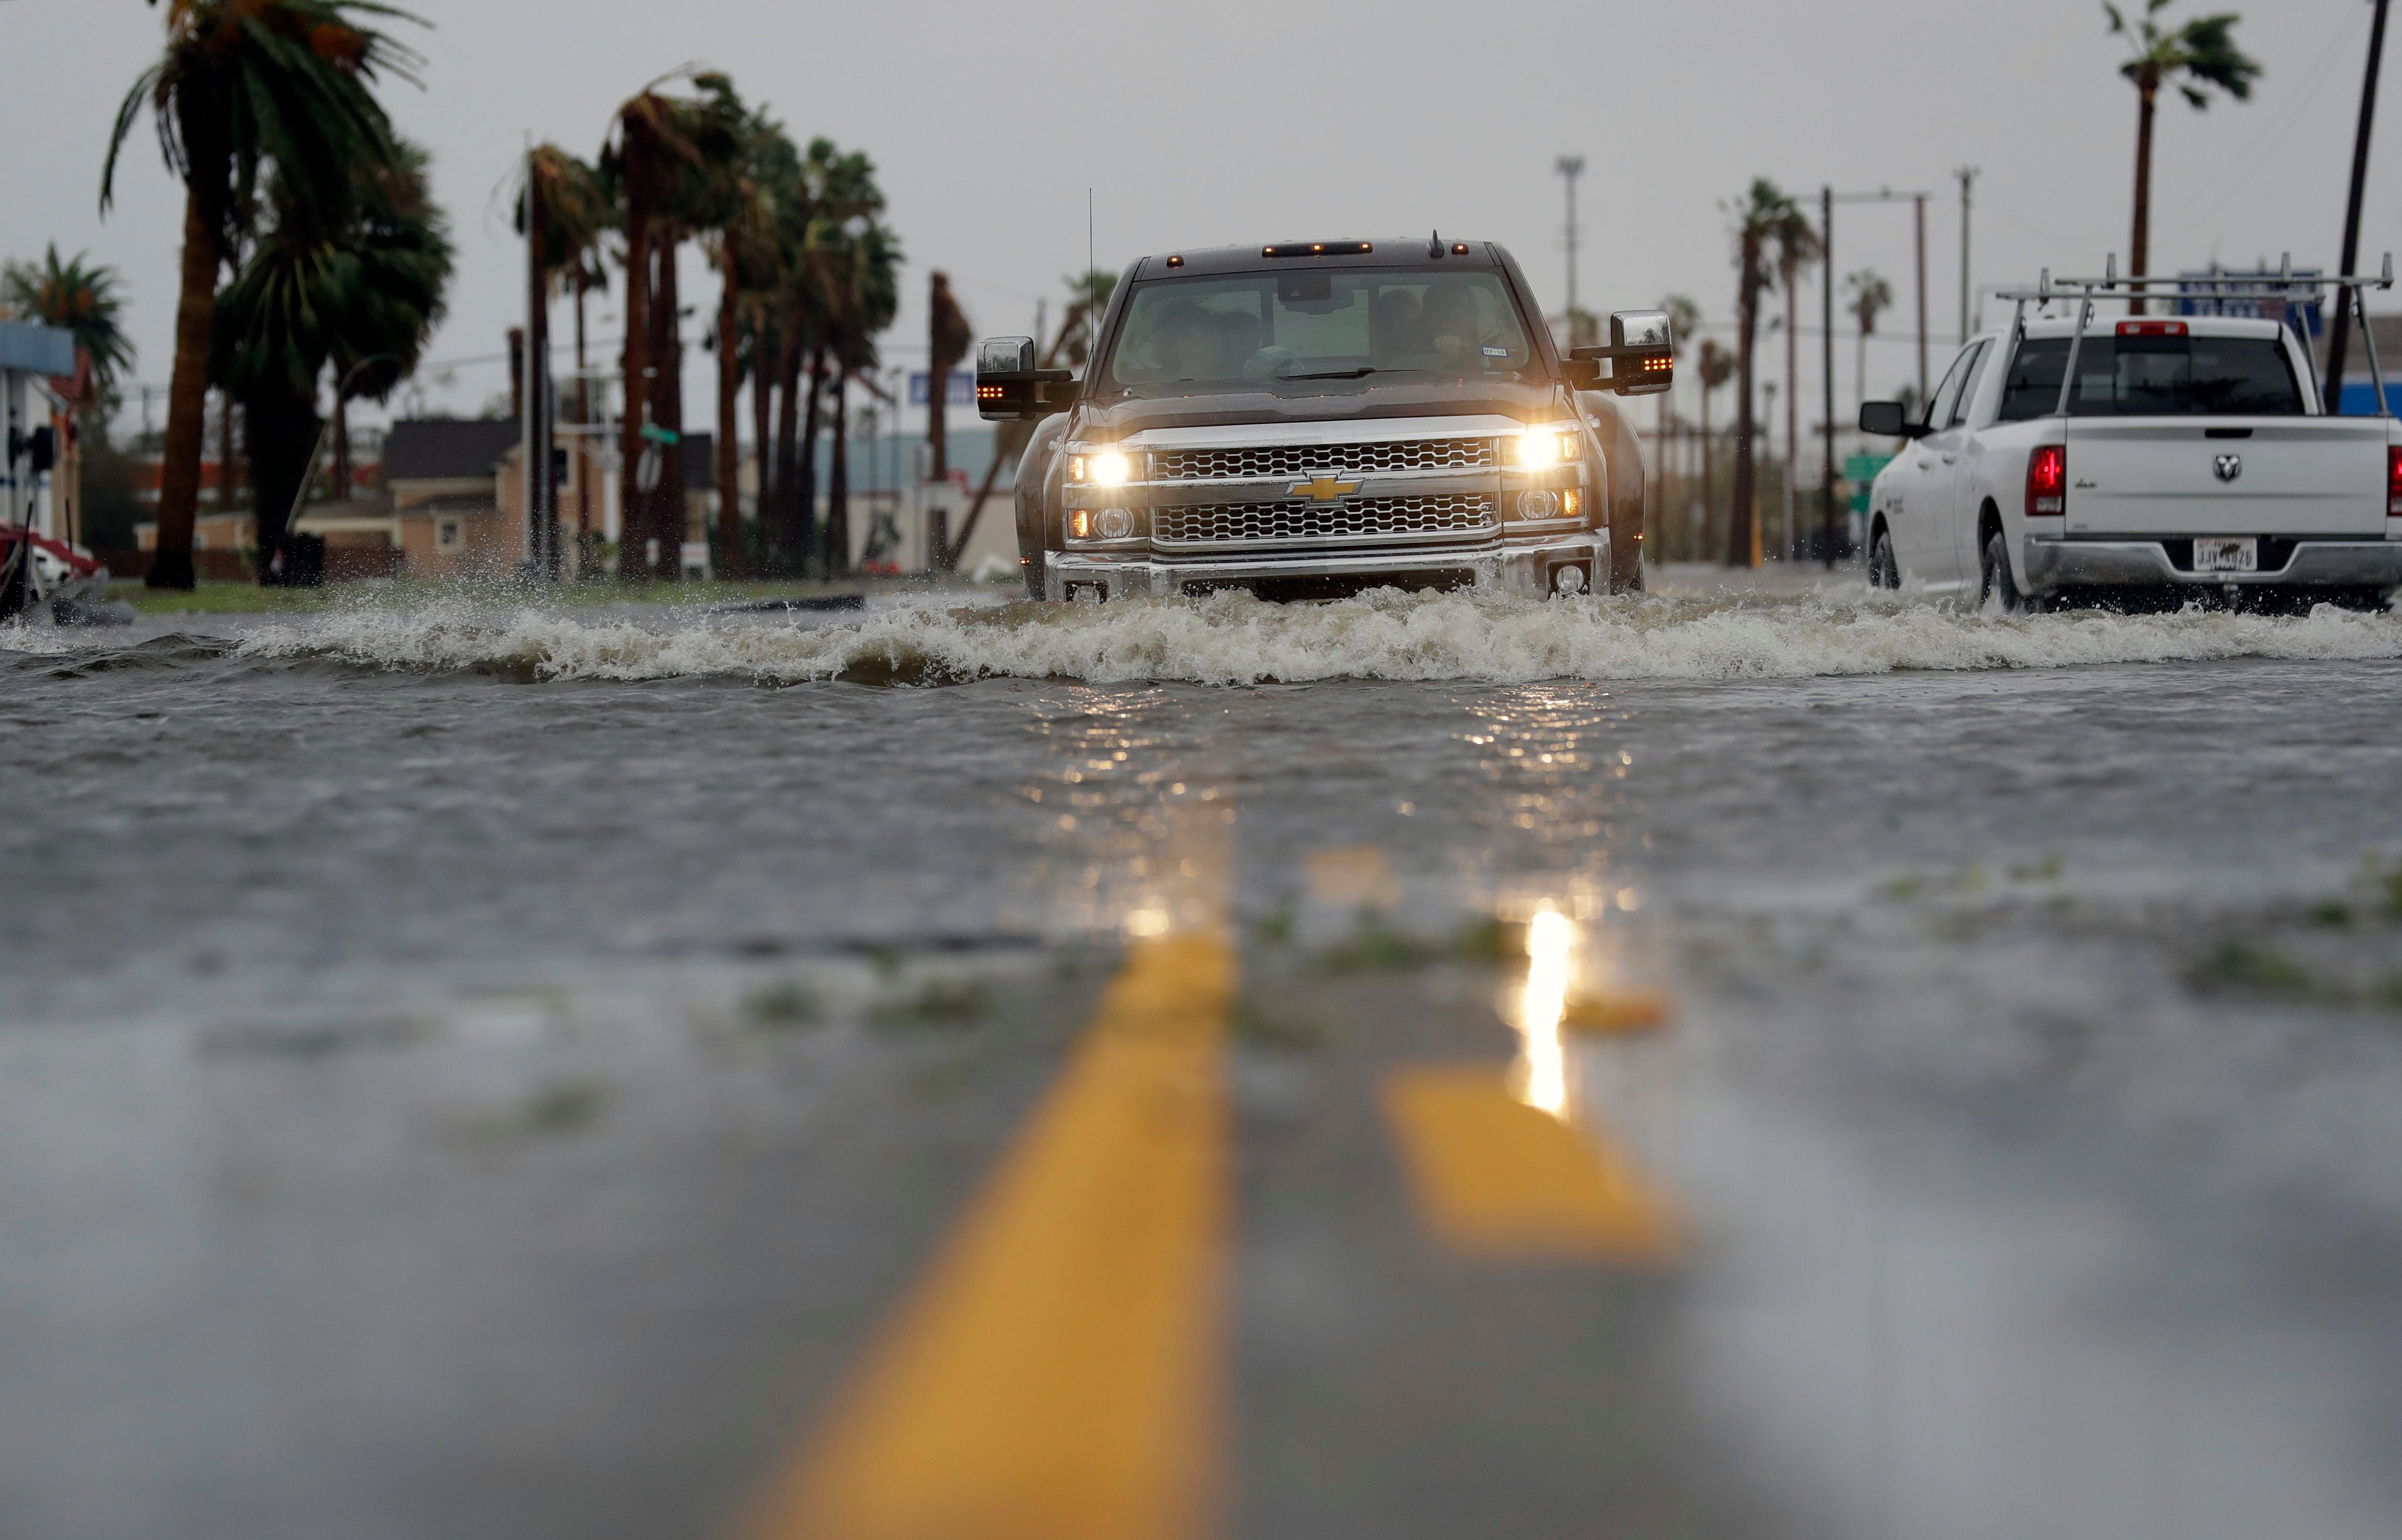 A drives moves through flood waters left behind by Hurricane Harvey, Saturday, Aug. 26, 2017, in Aransas Pass, Texas.   Harvey rolled over the Texas Gulf Coast on Saturday, smashing homes and businesses and lashing the shore with wind and rain so intense that drivers were forced off the road because they could not see in front of them. (AP Photo/Eric Gay)